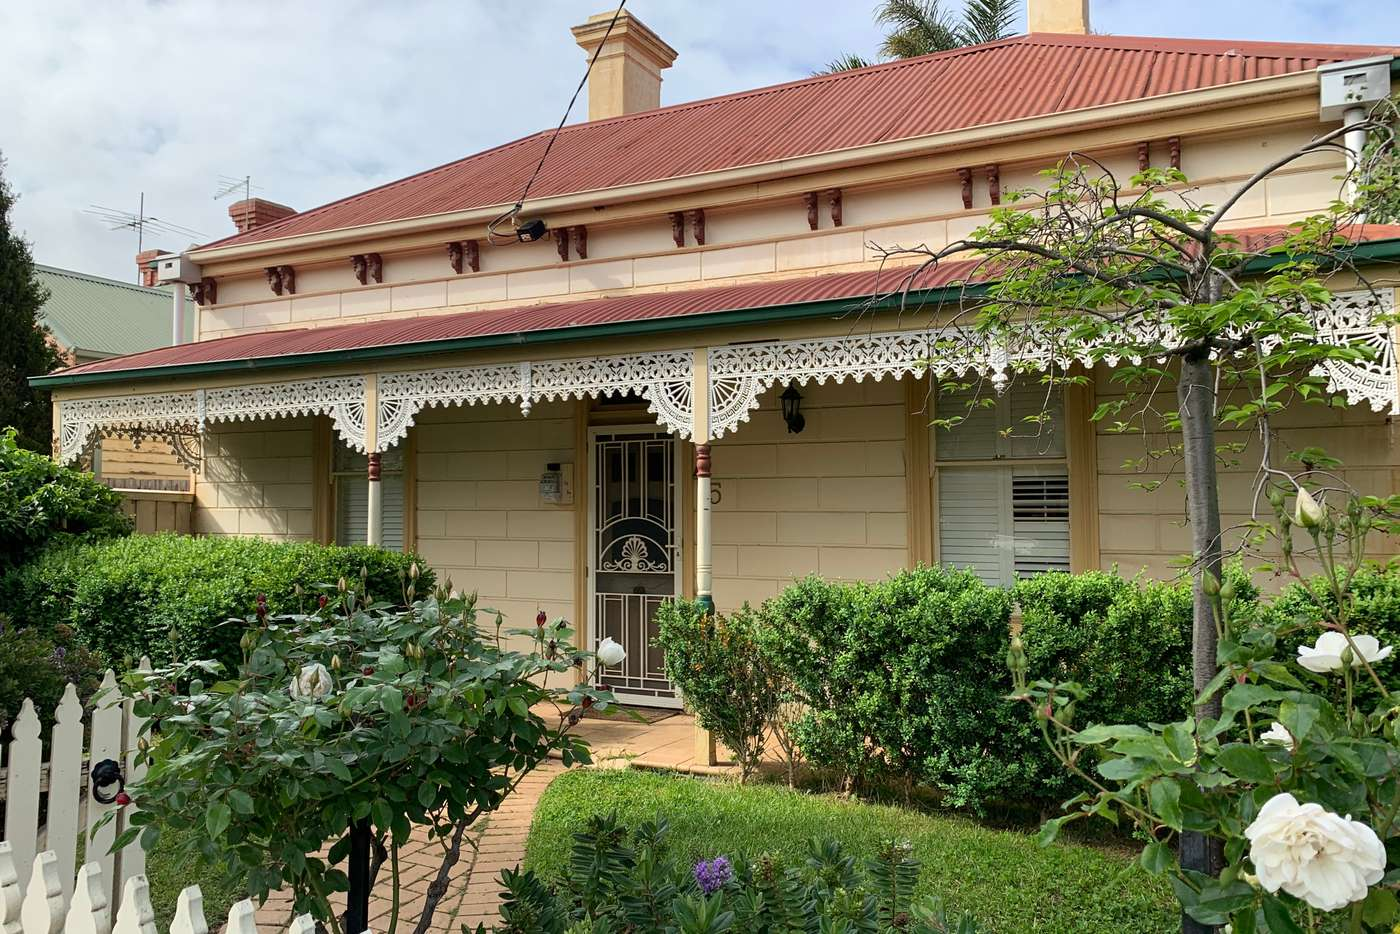 Main view of Homely house listing, 5 Hall Street, Coburg VIC 3058